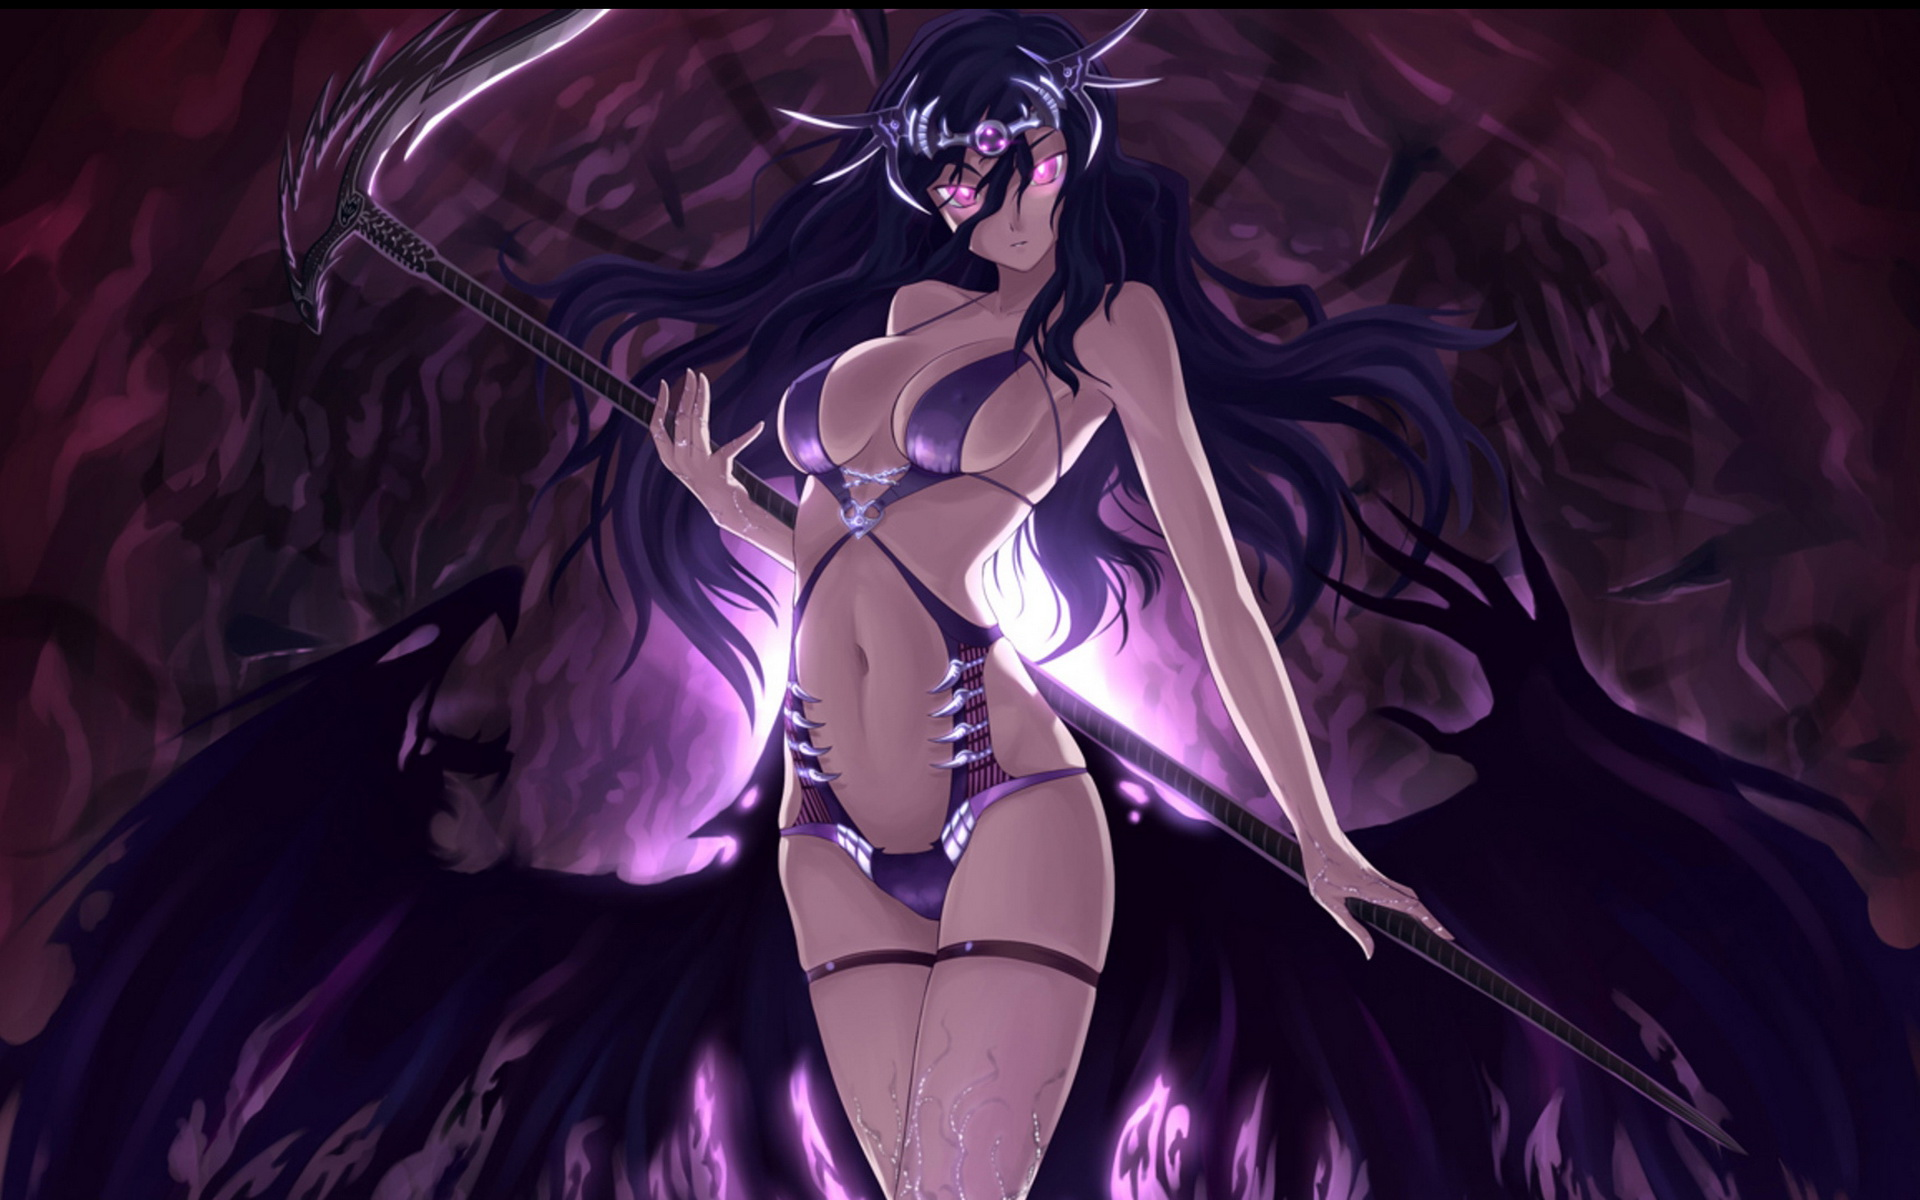 Demon girl anime porn video porn photos